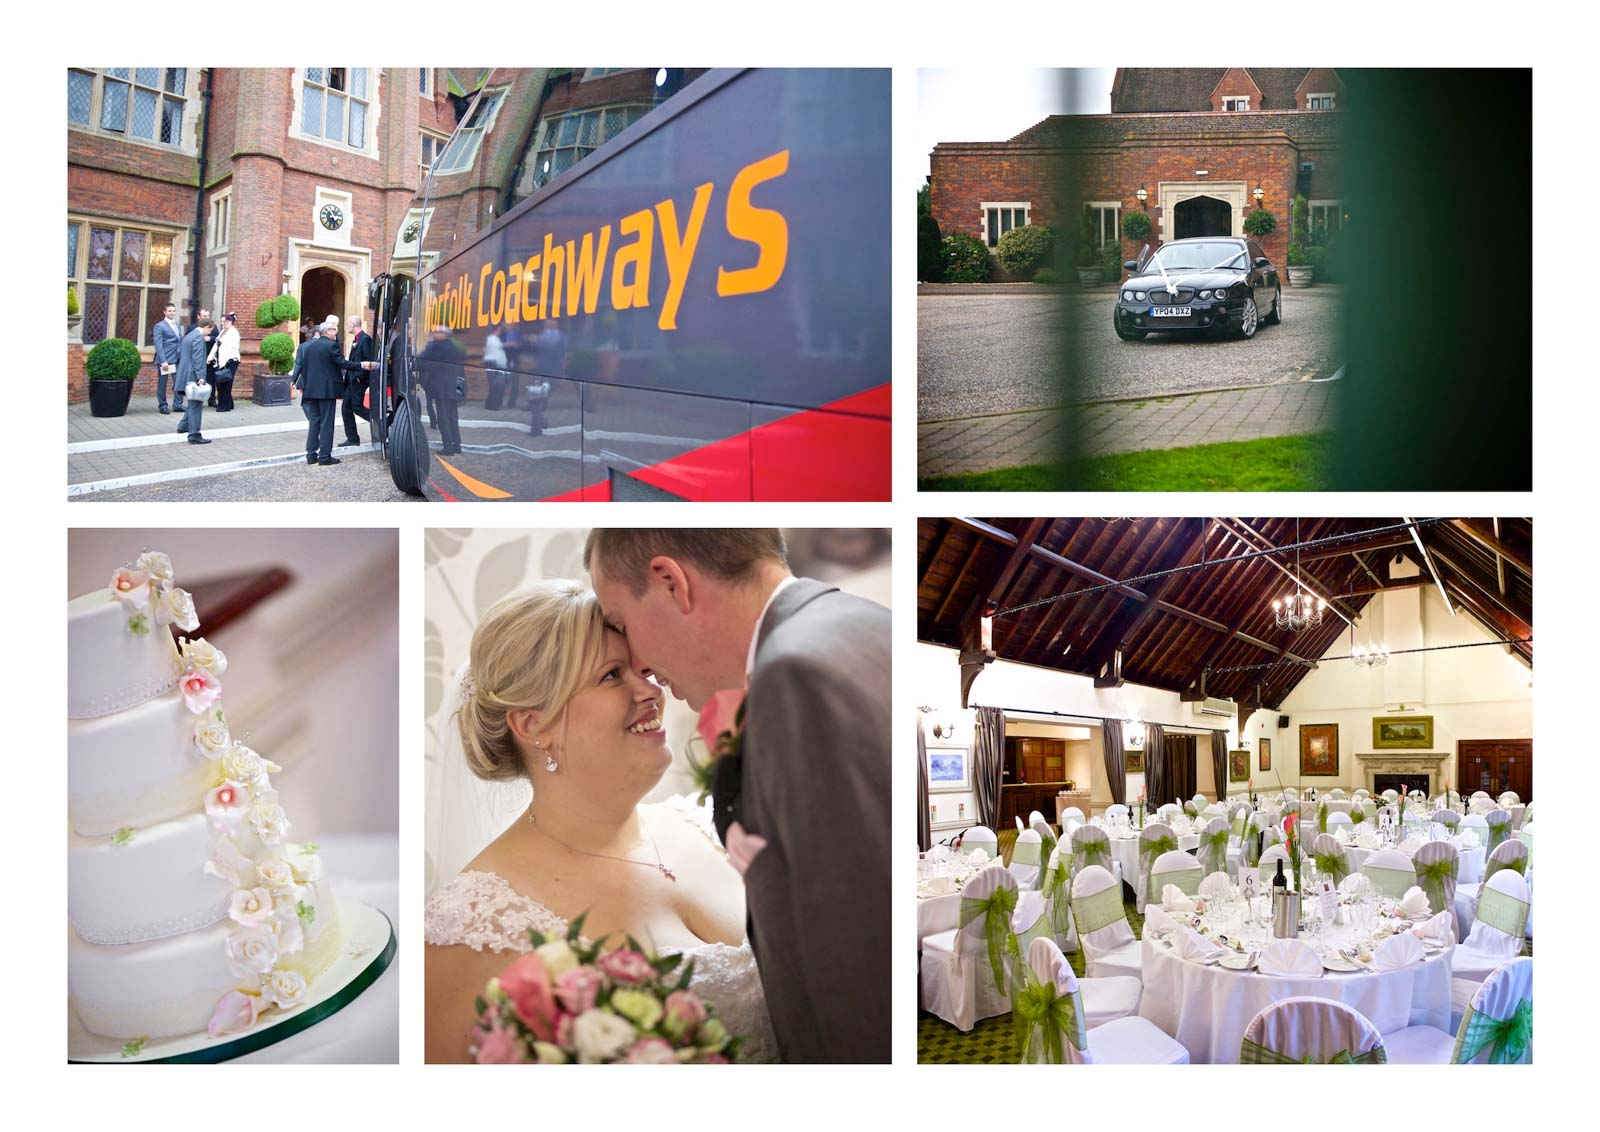 Dunston-Hall Norwich Wedding Venue